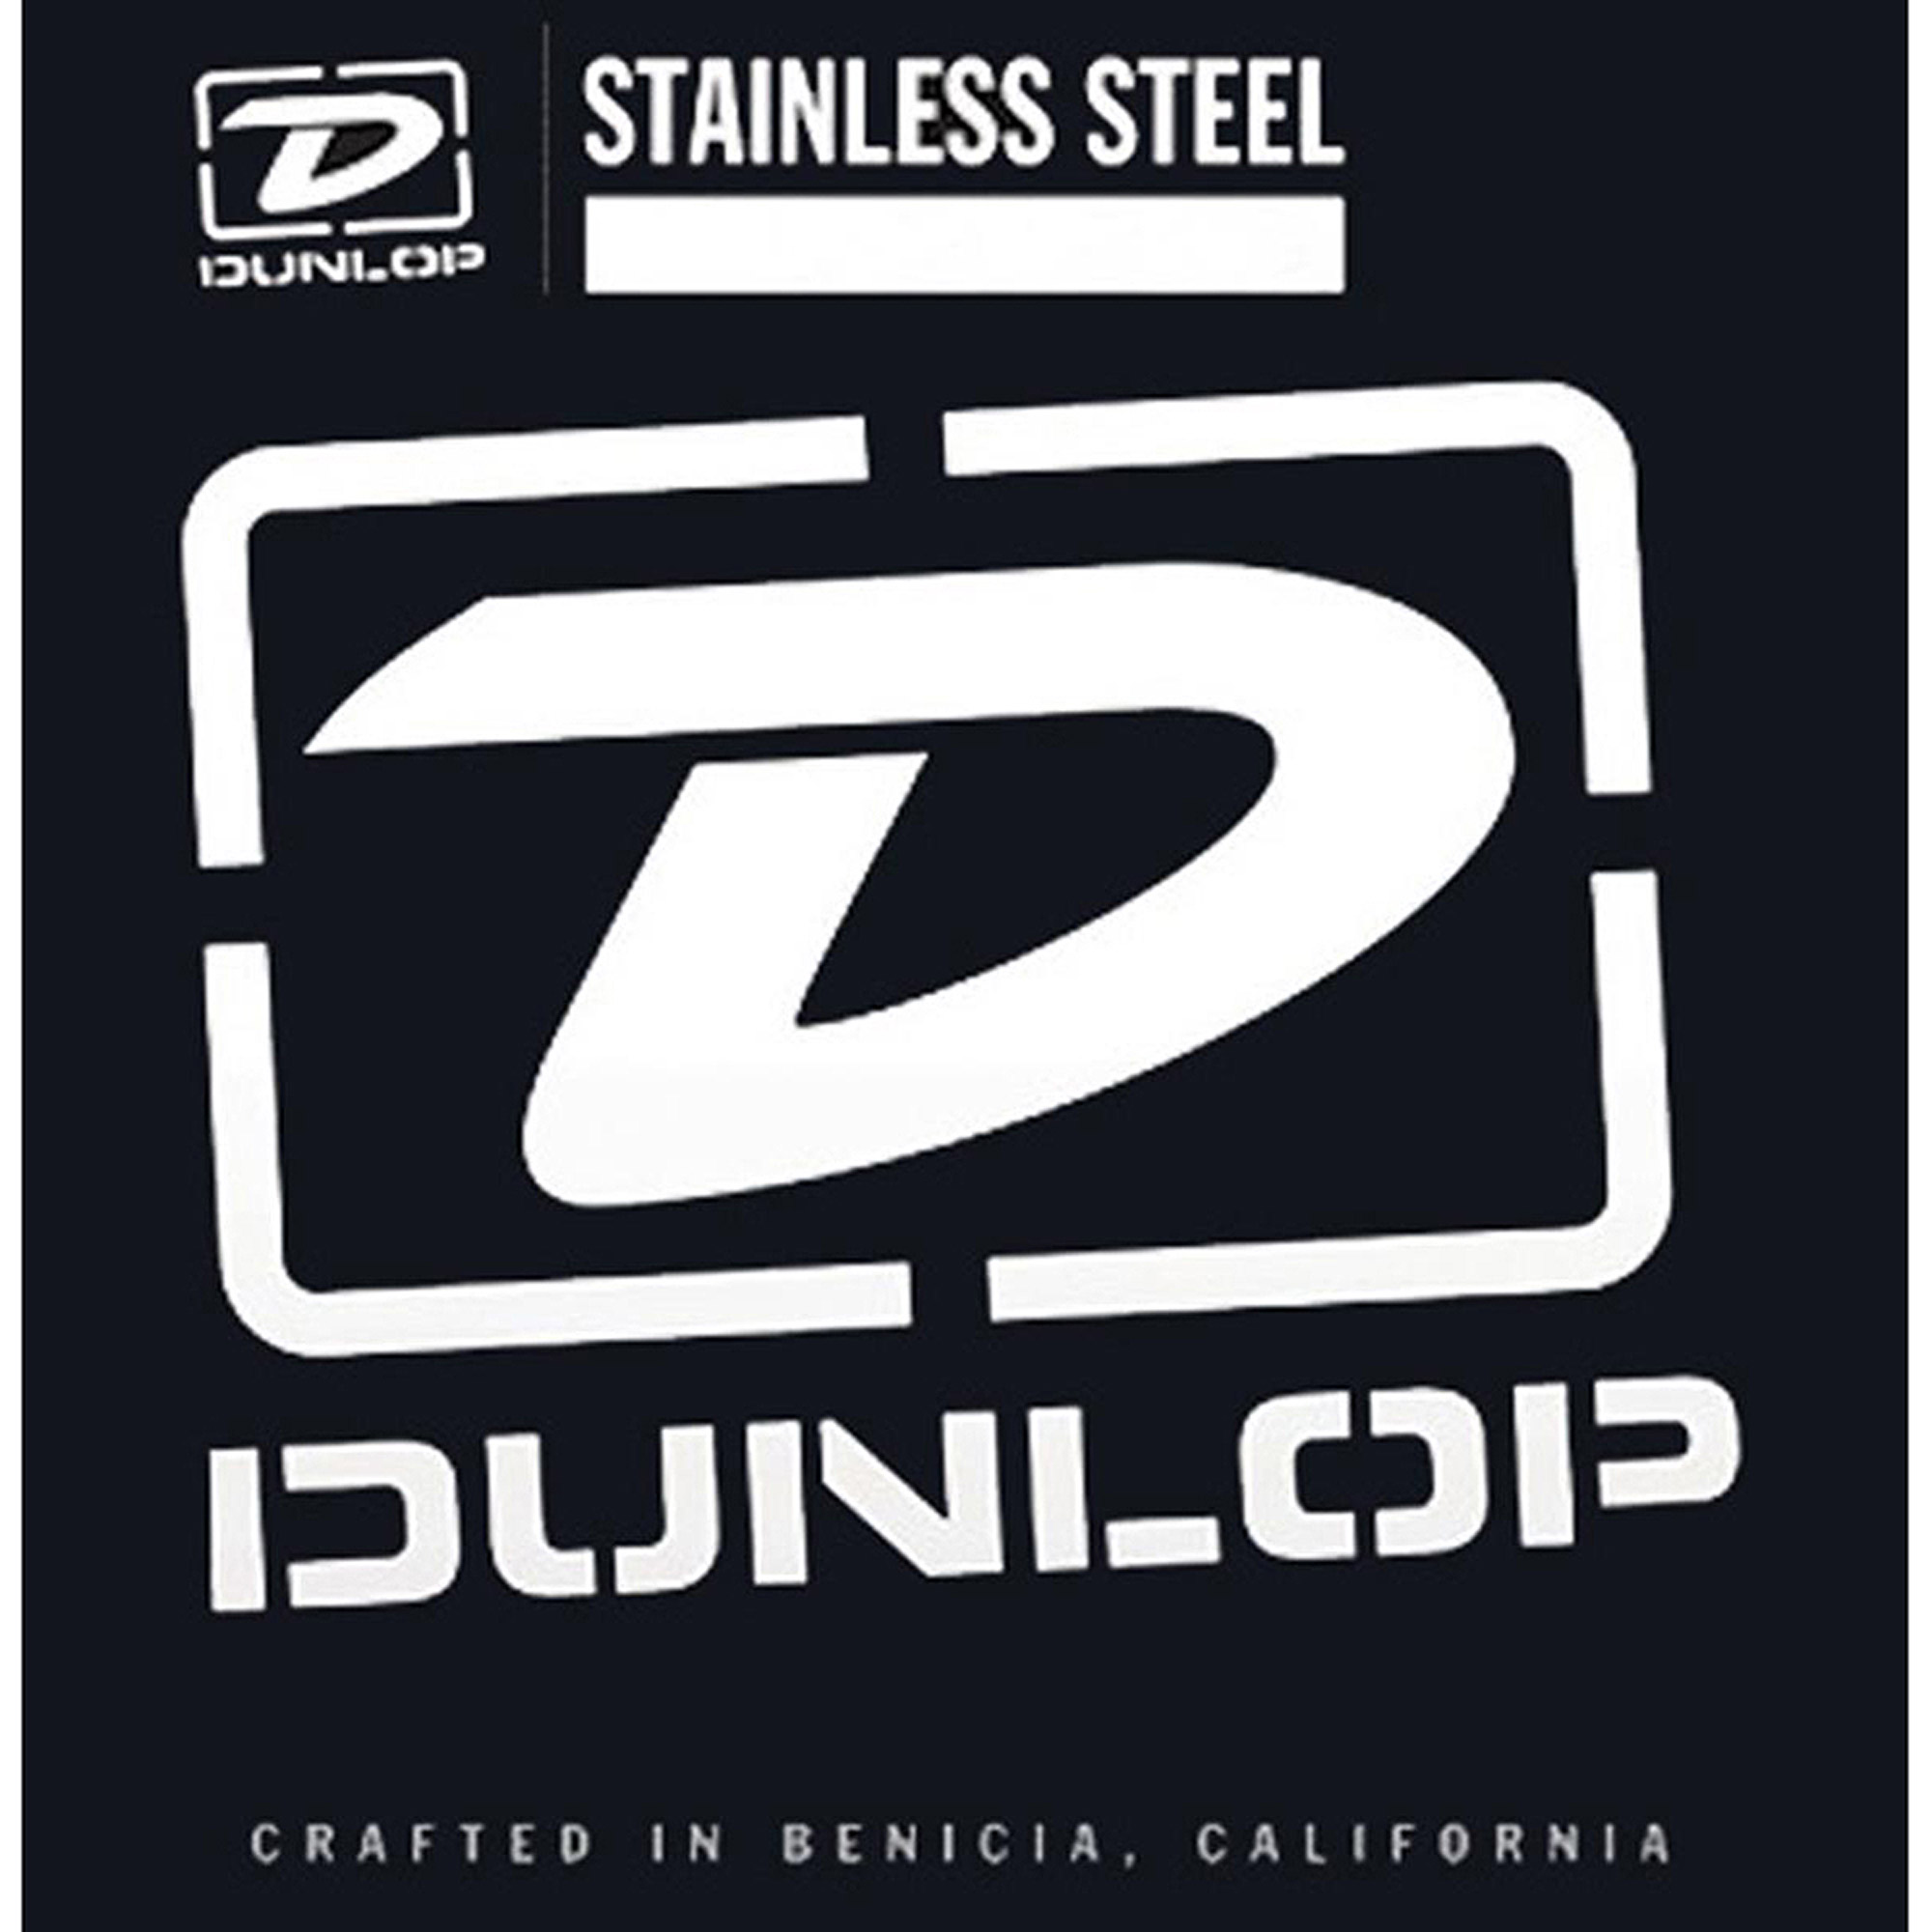 Dunlop DBS60120 Extra Heavy Stainless Steel Bass Guitar 4 String Set .060-.120 by Dunlop